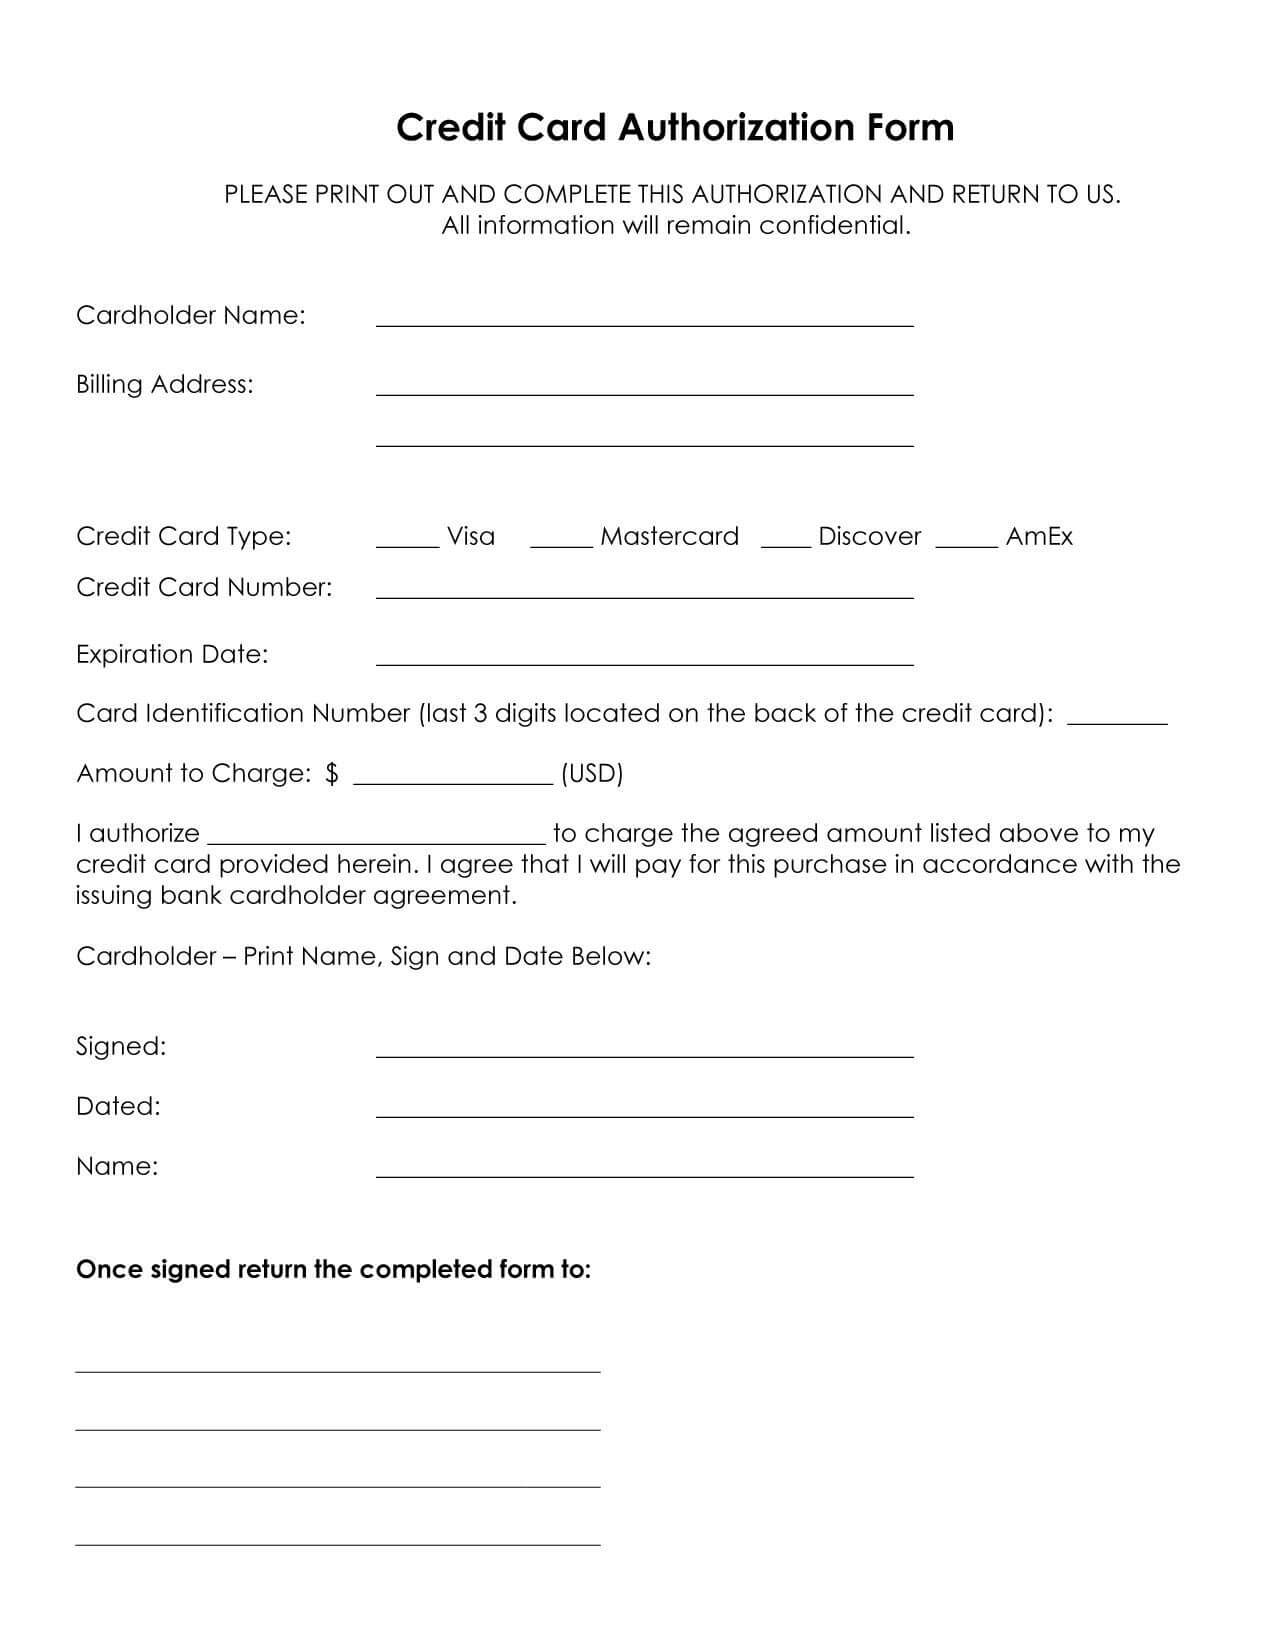 Credit Card Authorization Form Template In 2020 | Credit Within Authorization To Charge Credit Card Template